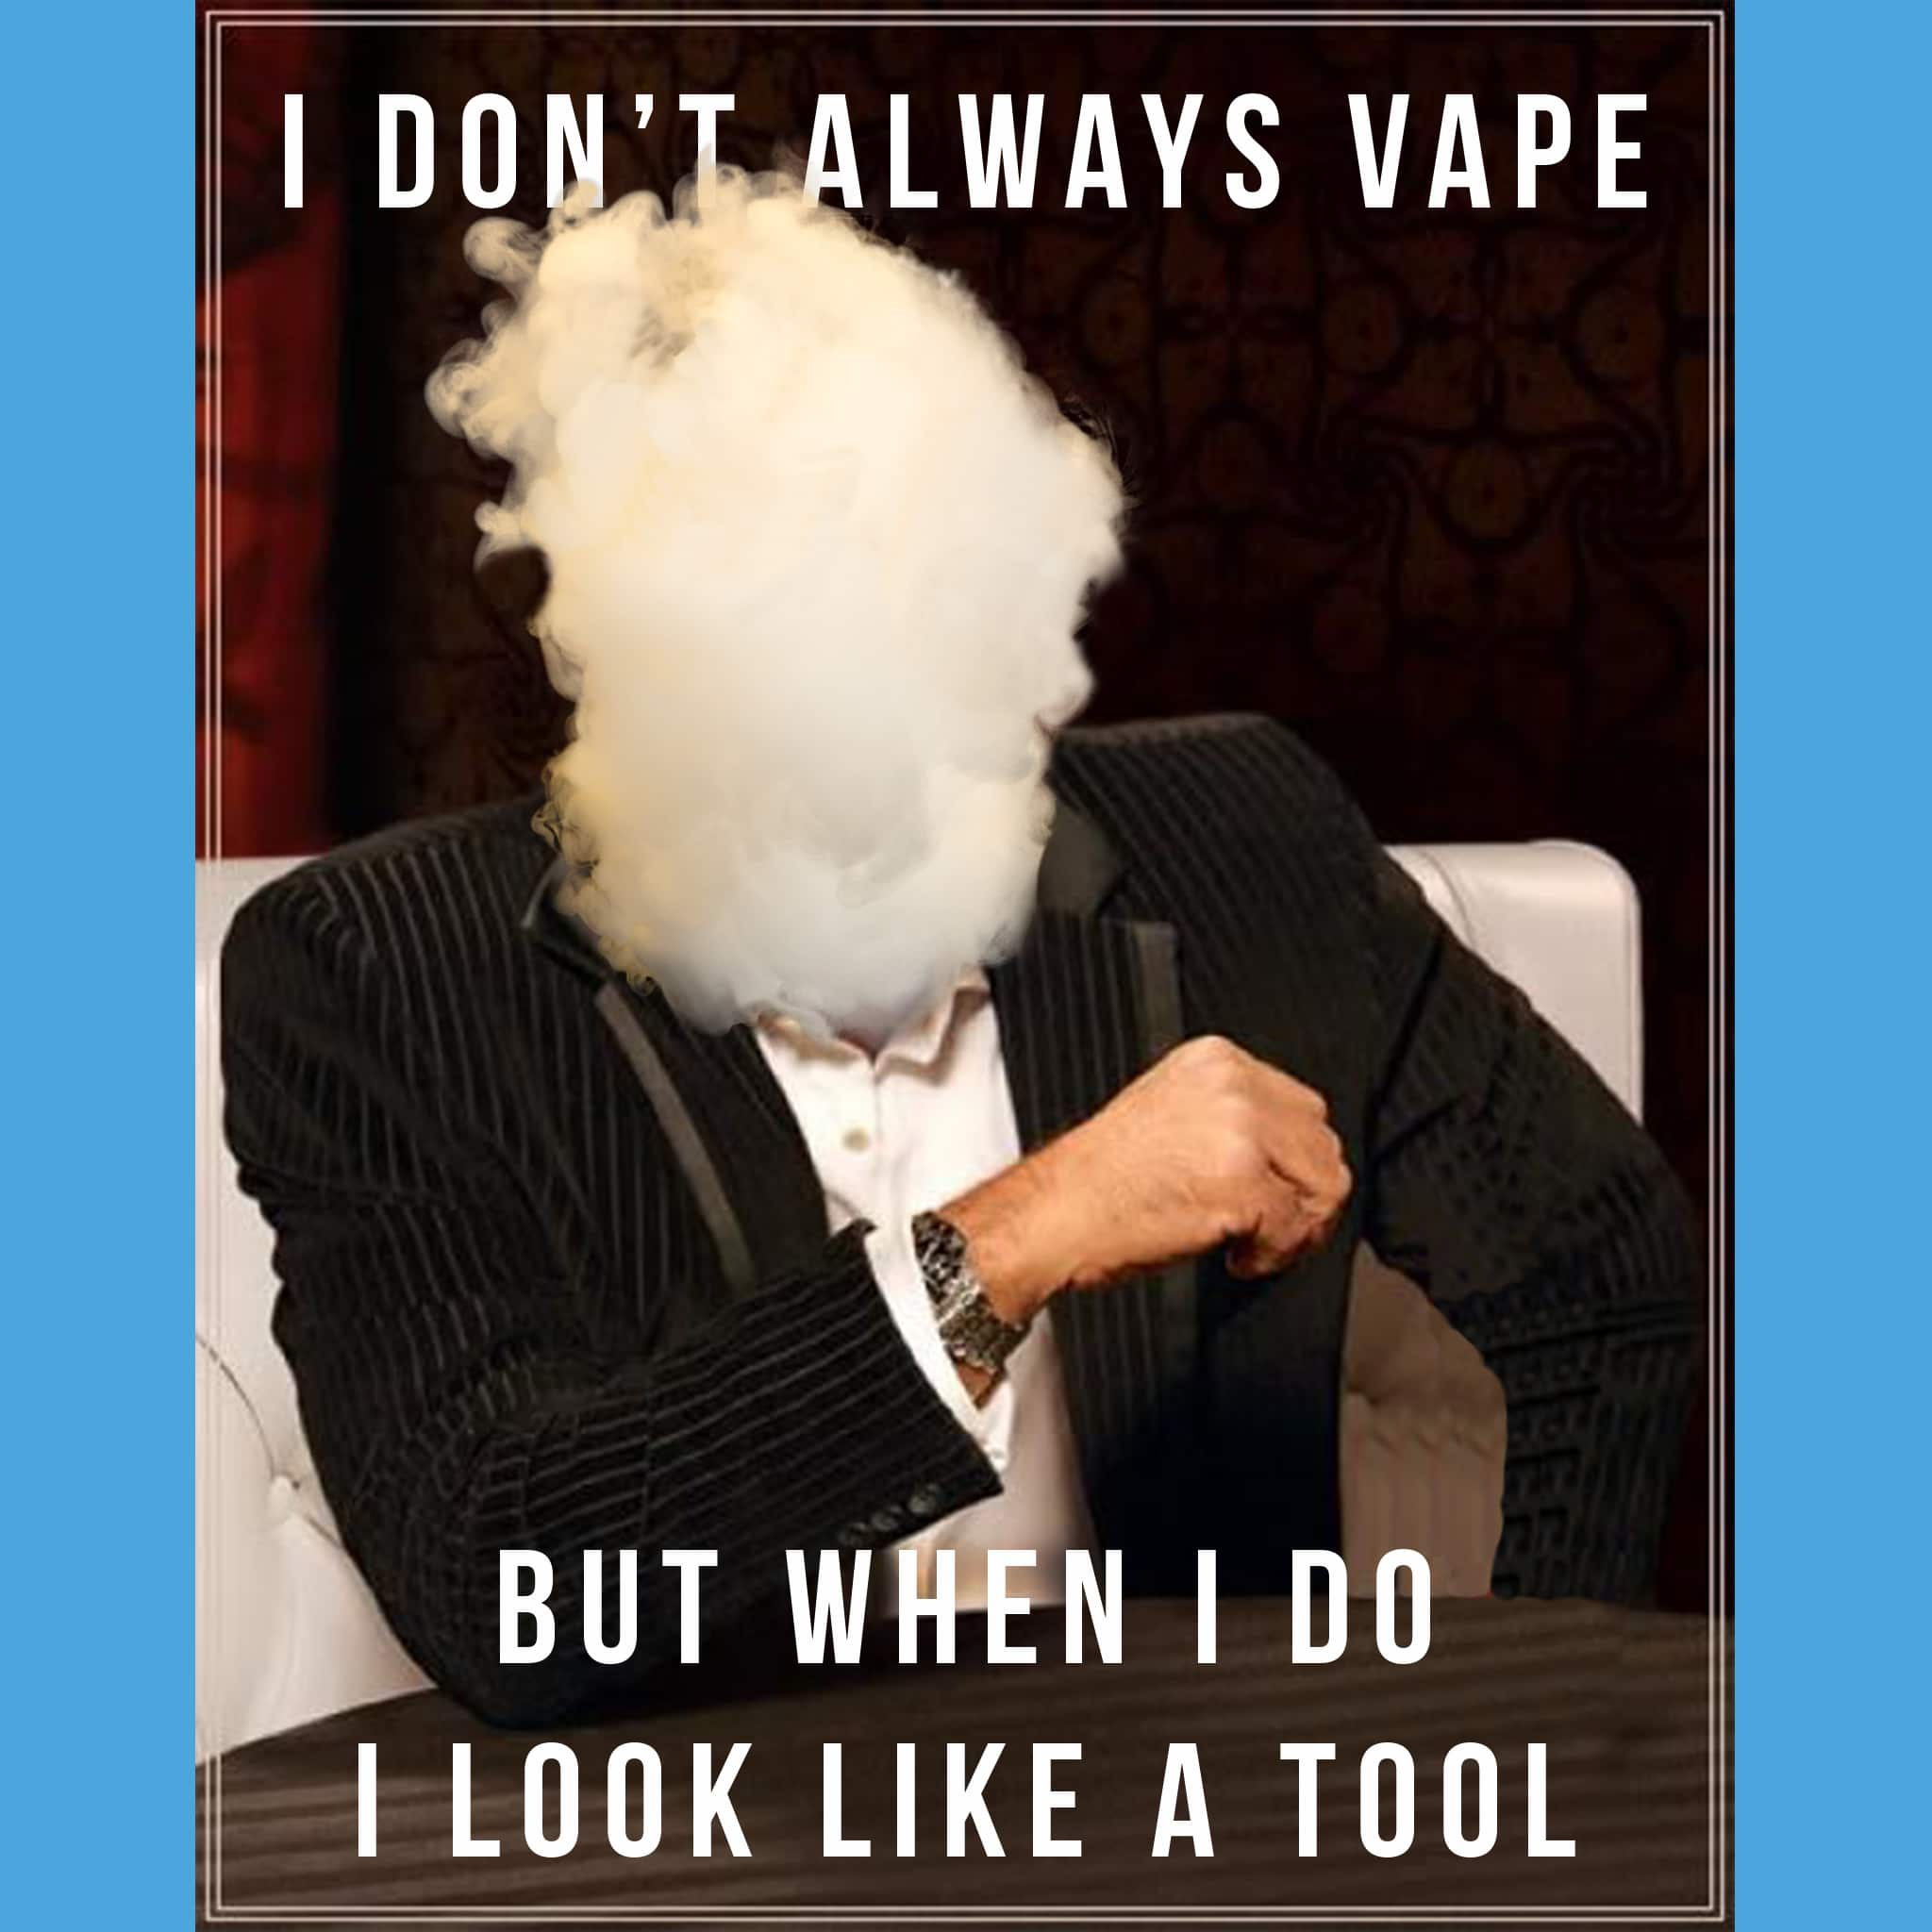 I don't always vape but when I do I look like a tool- anti-vaping meme